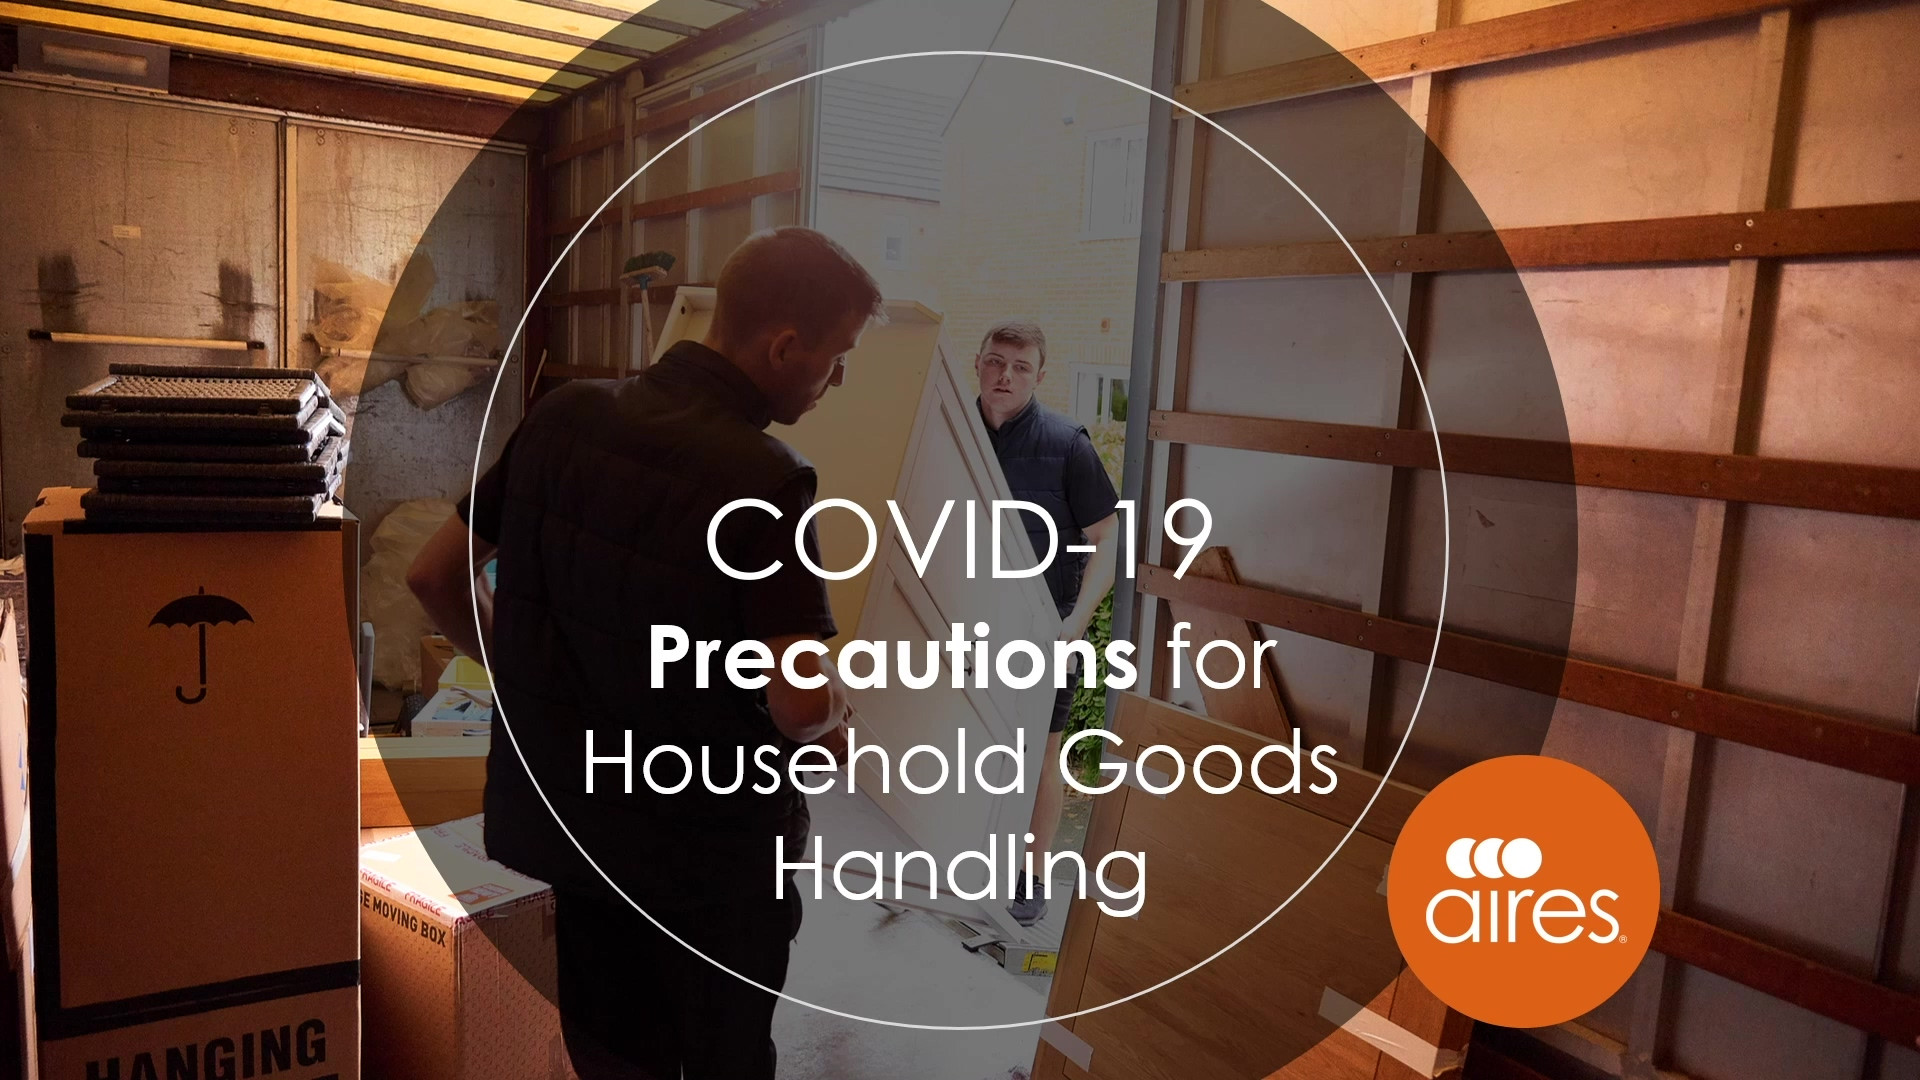 COVID-19 Precautions for Household Goods Handling_03.25.20